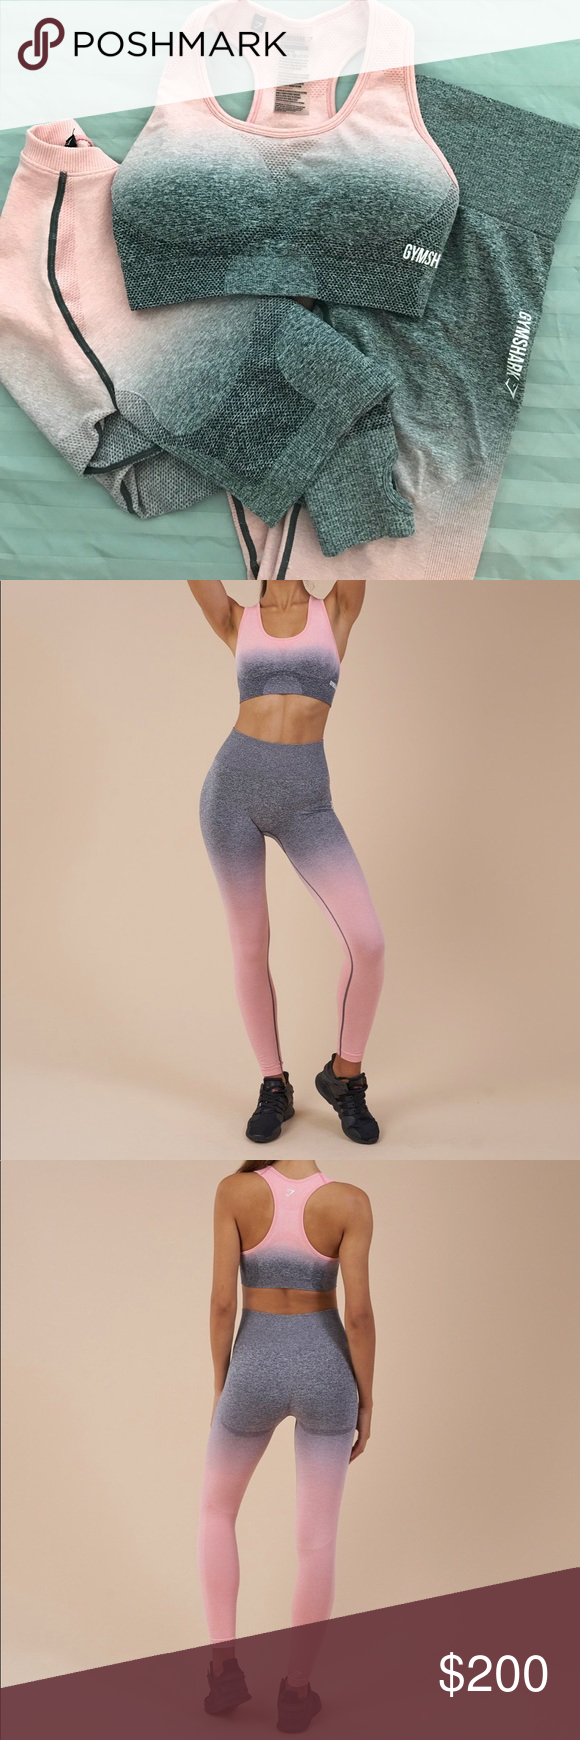 782a35ea47ea4f Gymshark Ombré Seamless Set. Selling as is. Please read the description  carefully. Selling